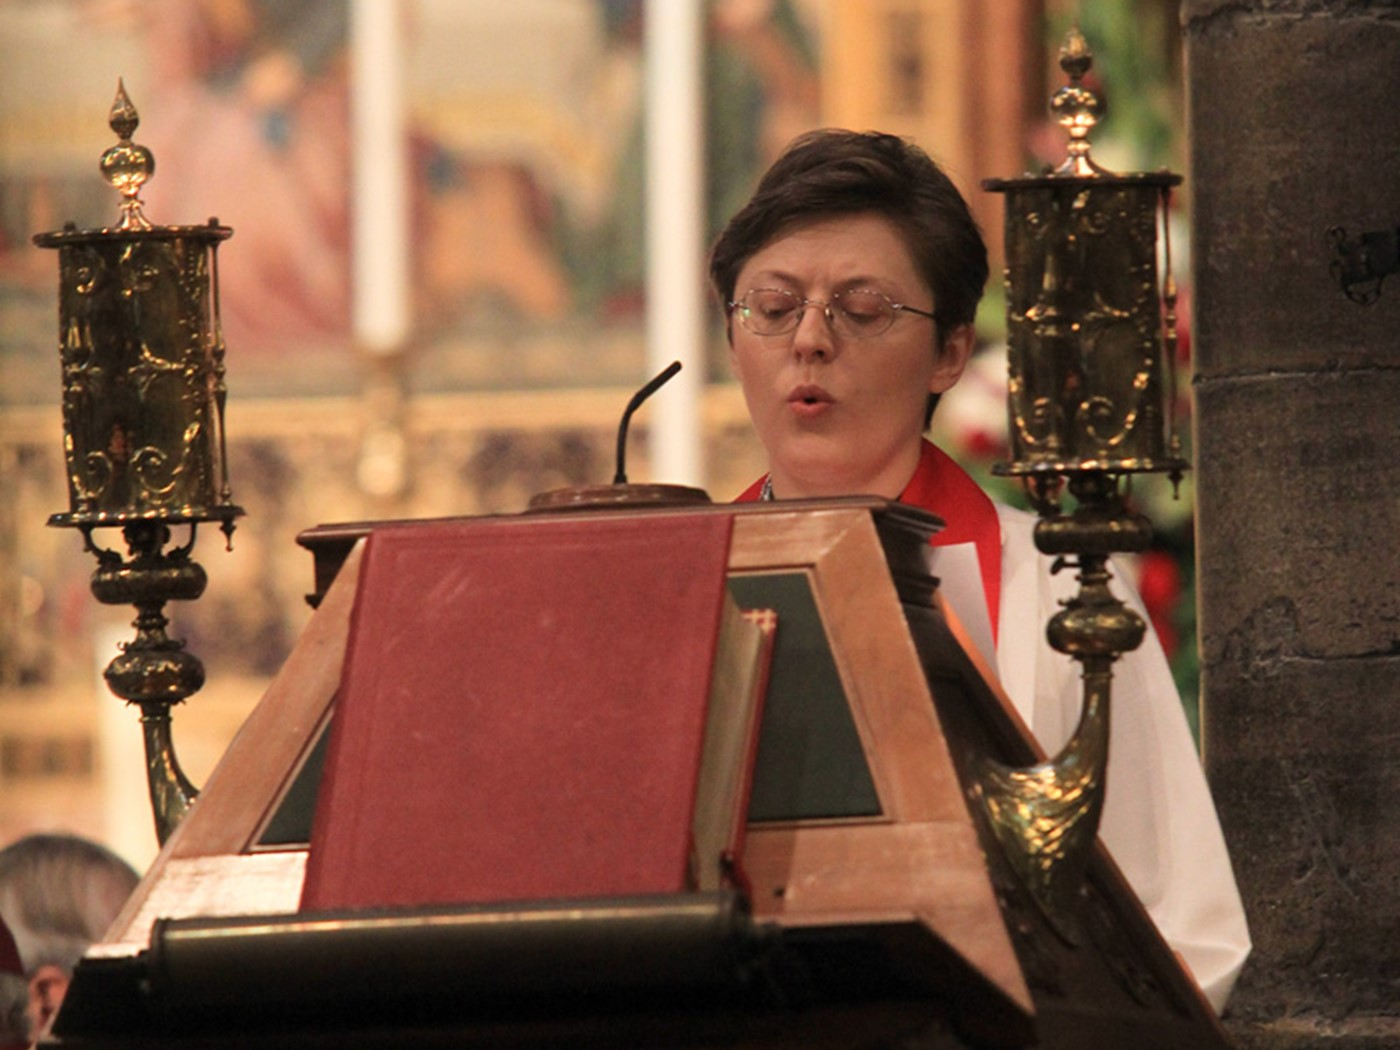 The Reverend Eliza Zikmane, pastor, the United Kingdom Lativan Lutheran Church and St Anne's Lutheran Church, London, reads St John 17: 20-26